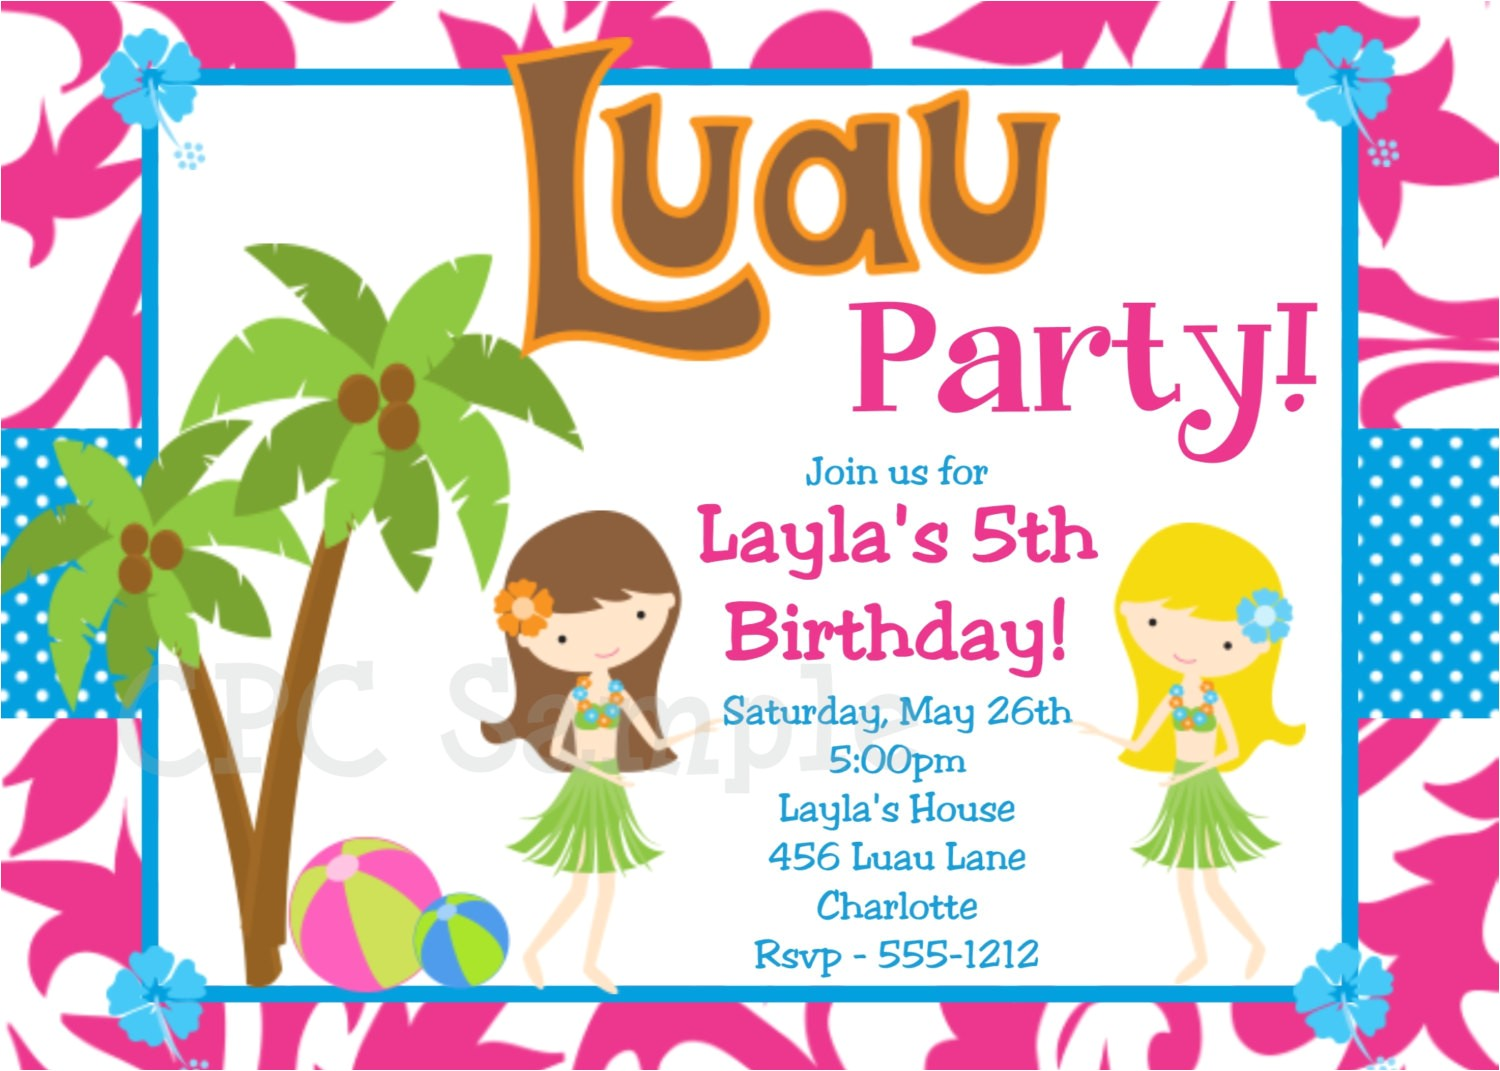 luau birthday invitation hawaiian beach